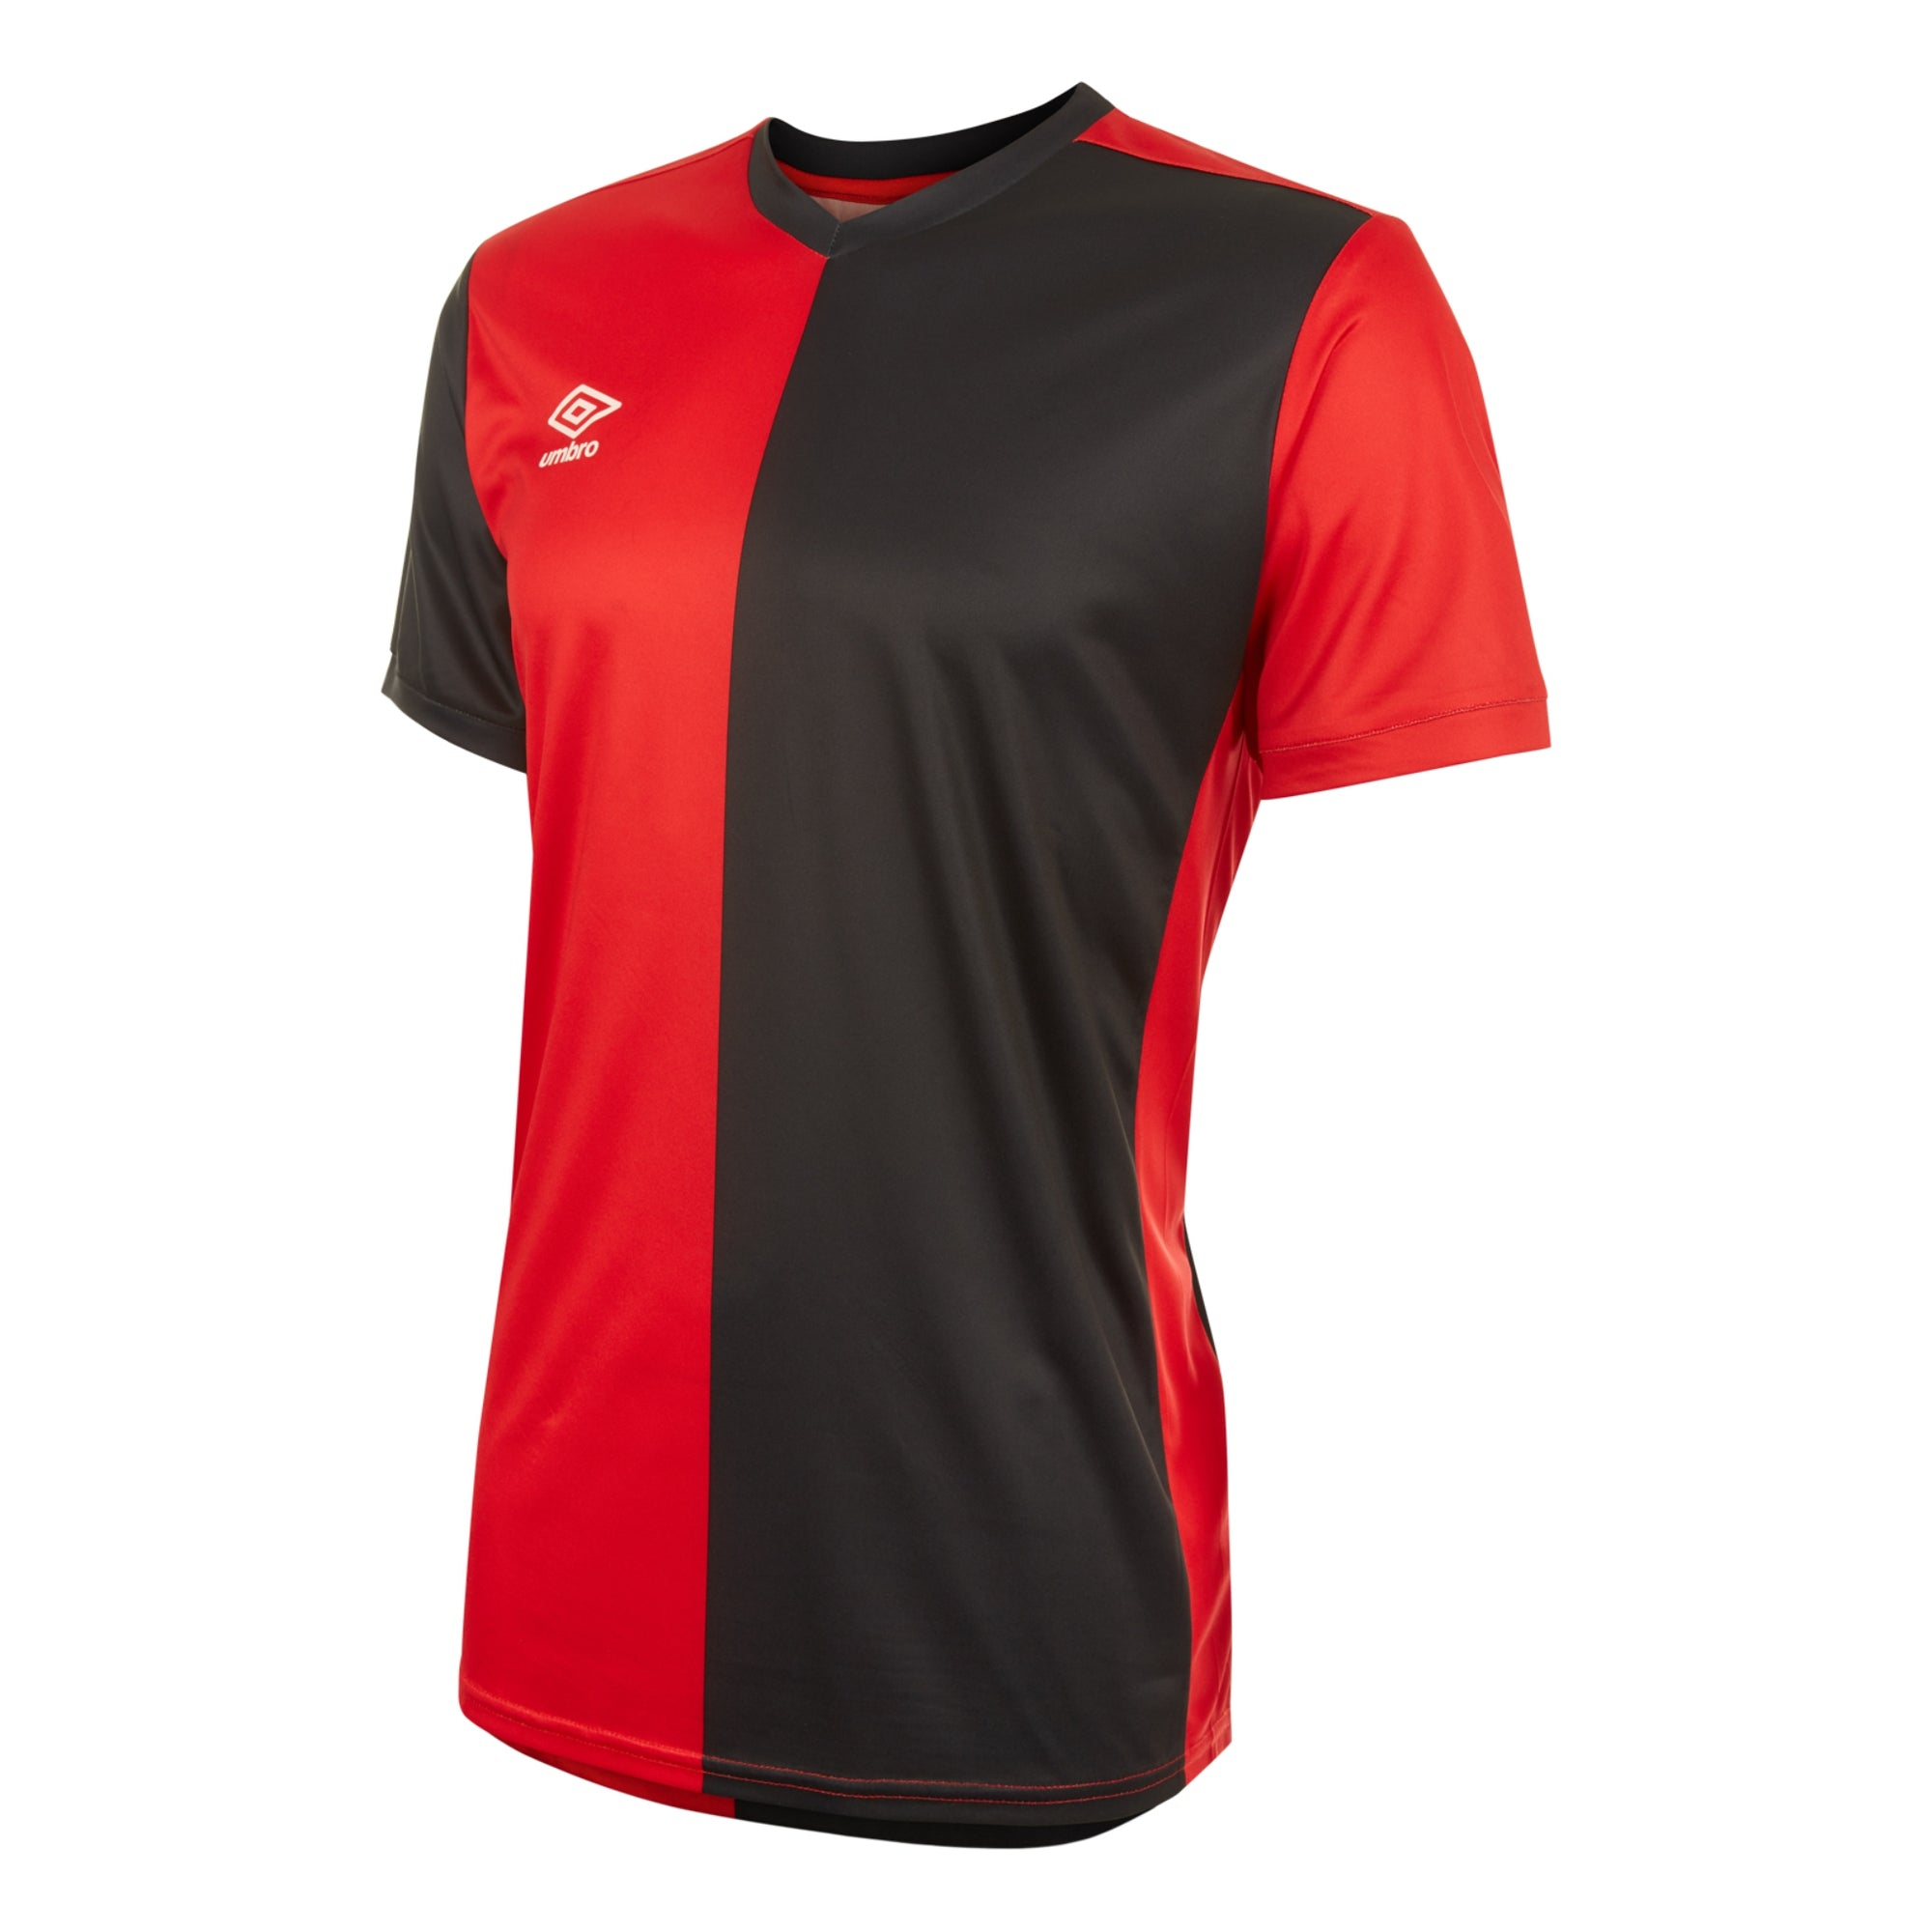 Umbro 50/50 SS Jersey - Vermillion/Black